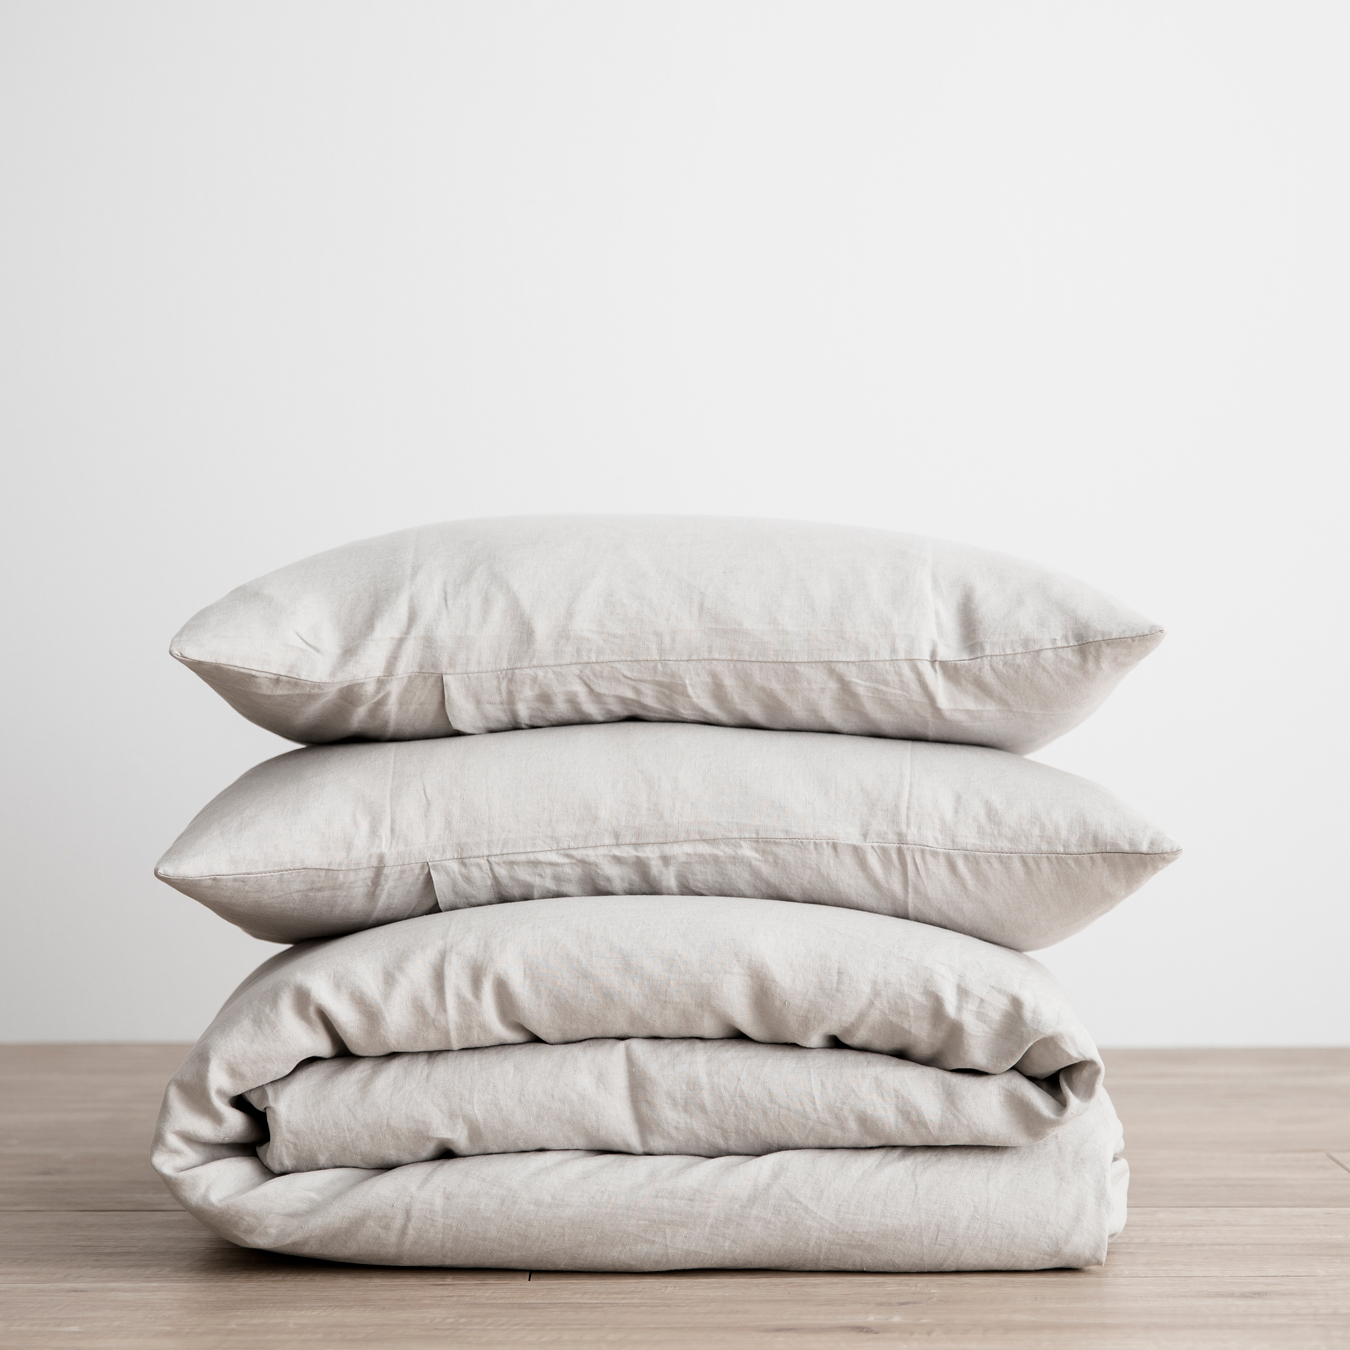 King Linen Duvet Cover Set - with pillowcases Smoke Grey